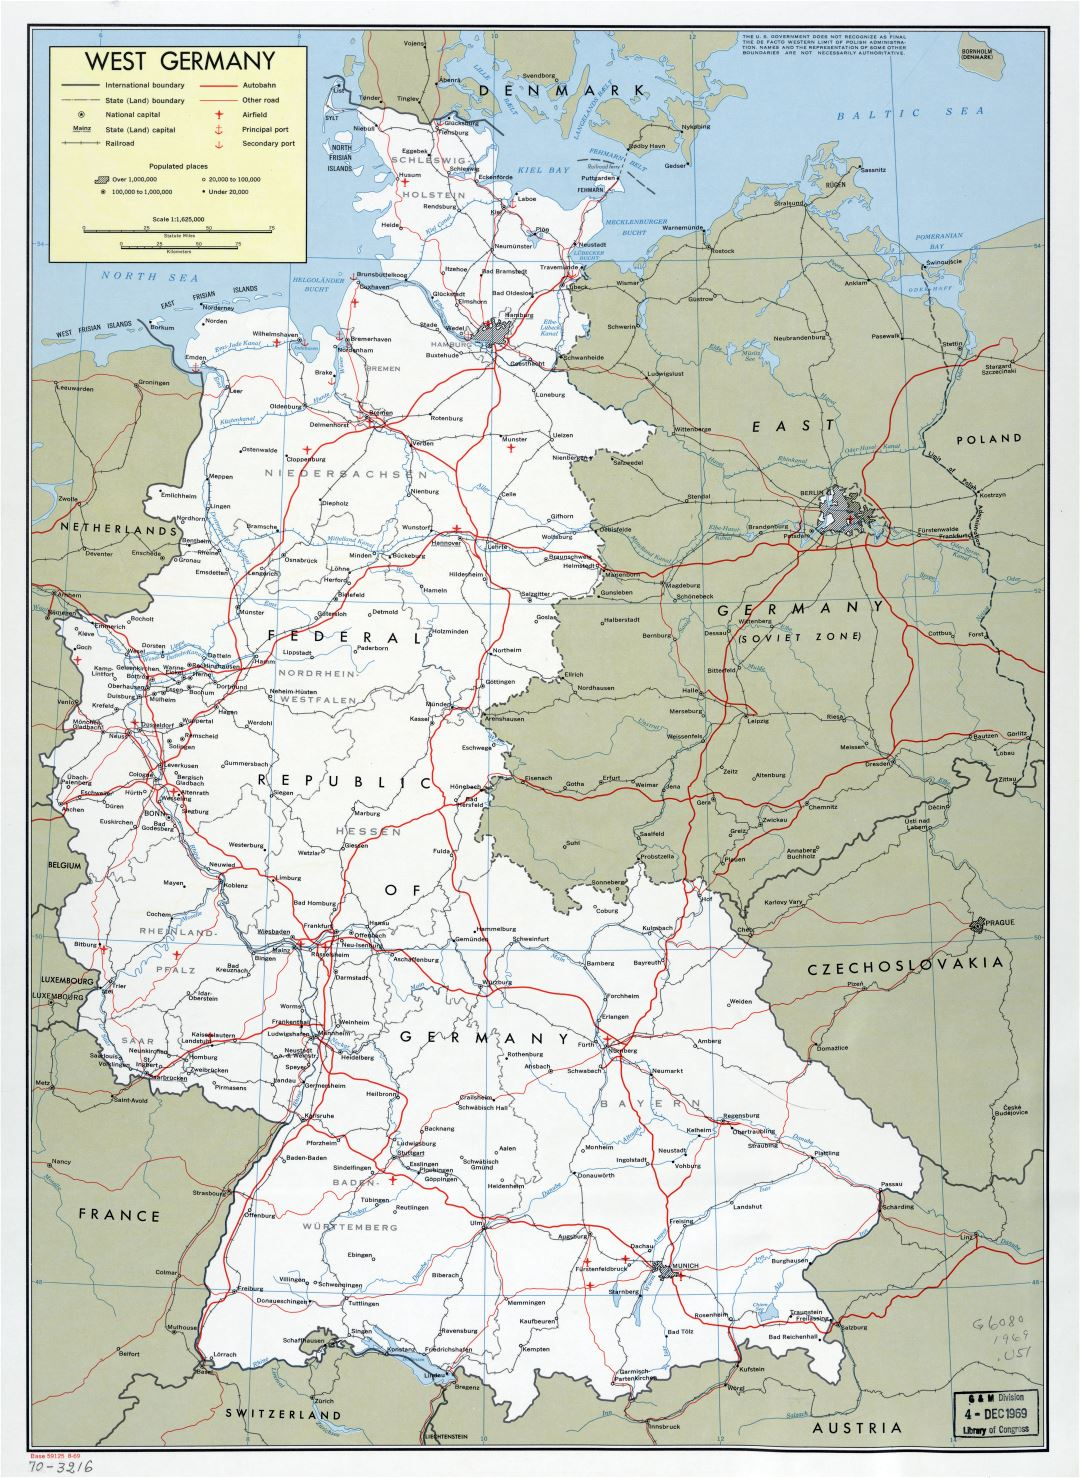 Large scale political and administrative map of West Germany with marks of cities, roads, railroads, airfield and seaports - 1969